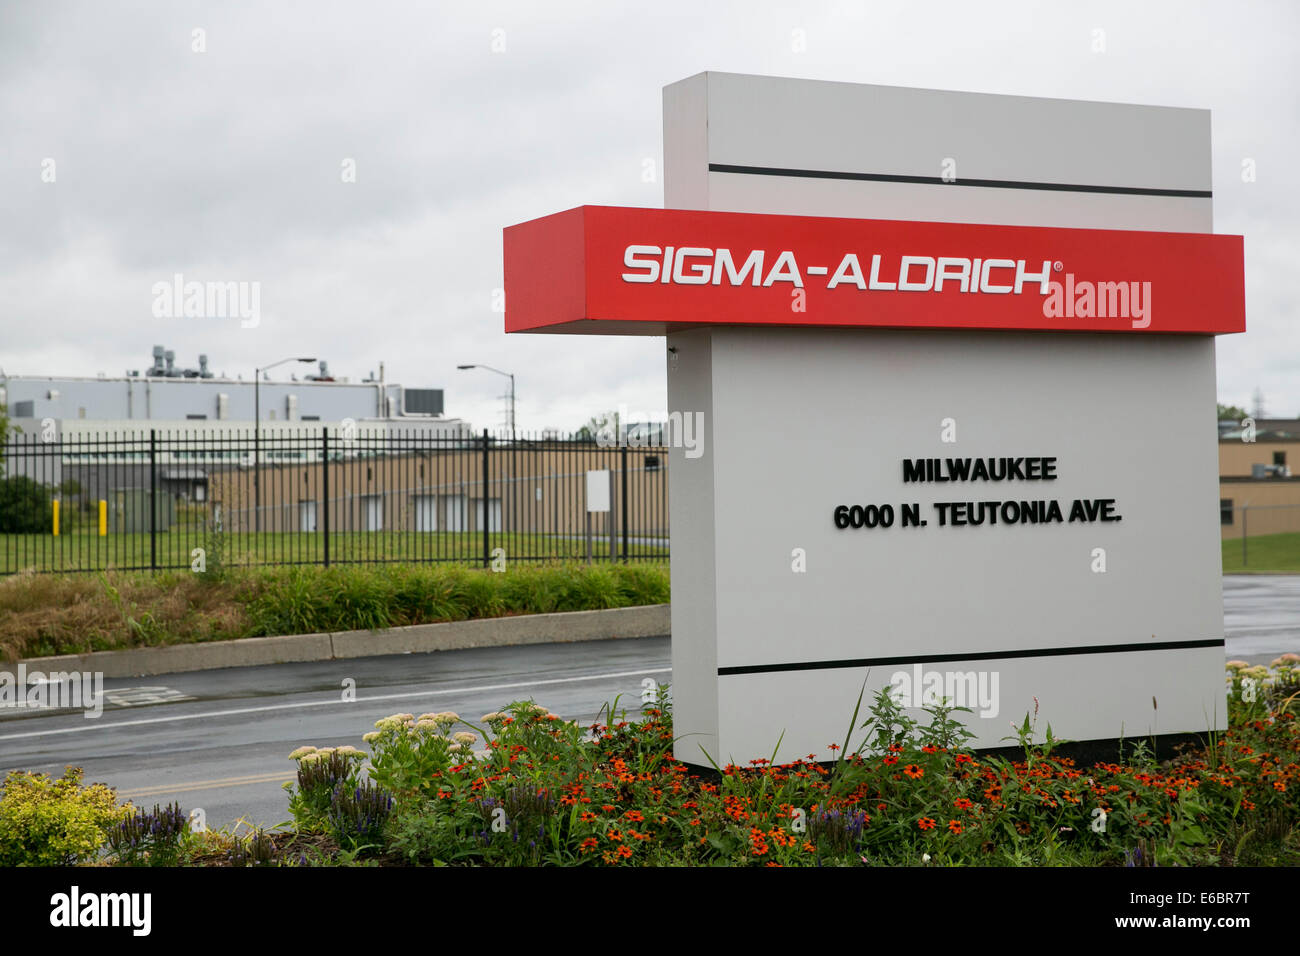 A Sigma-Aldrich manufacturing facility in Milwaukee, Wisconsin. Stock Photo